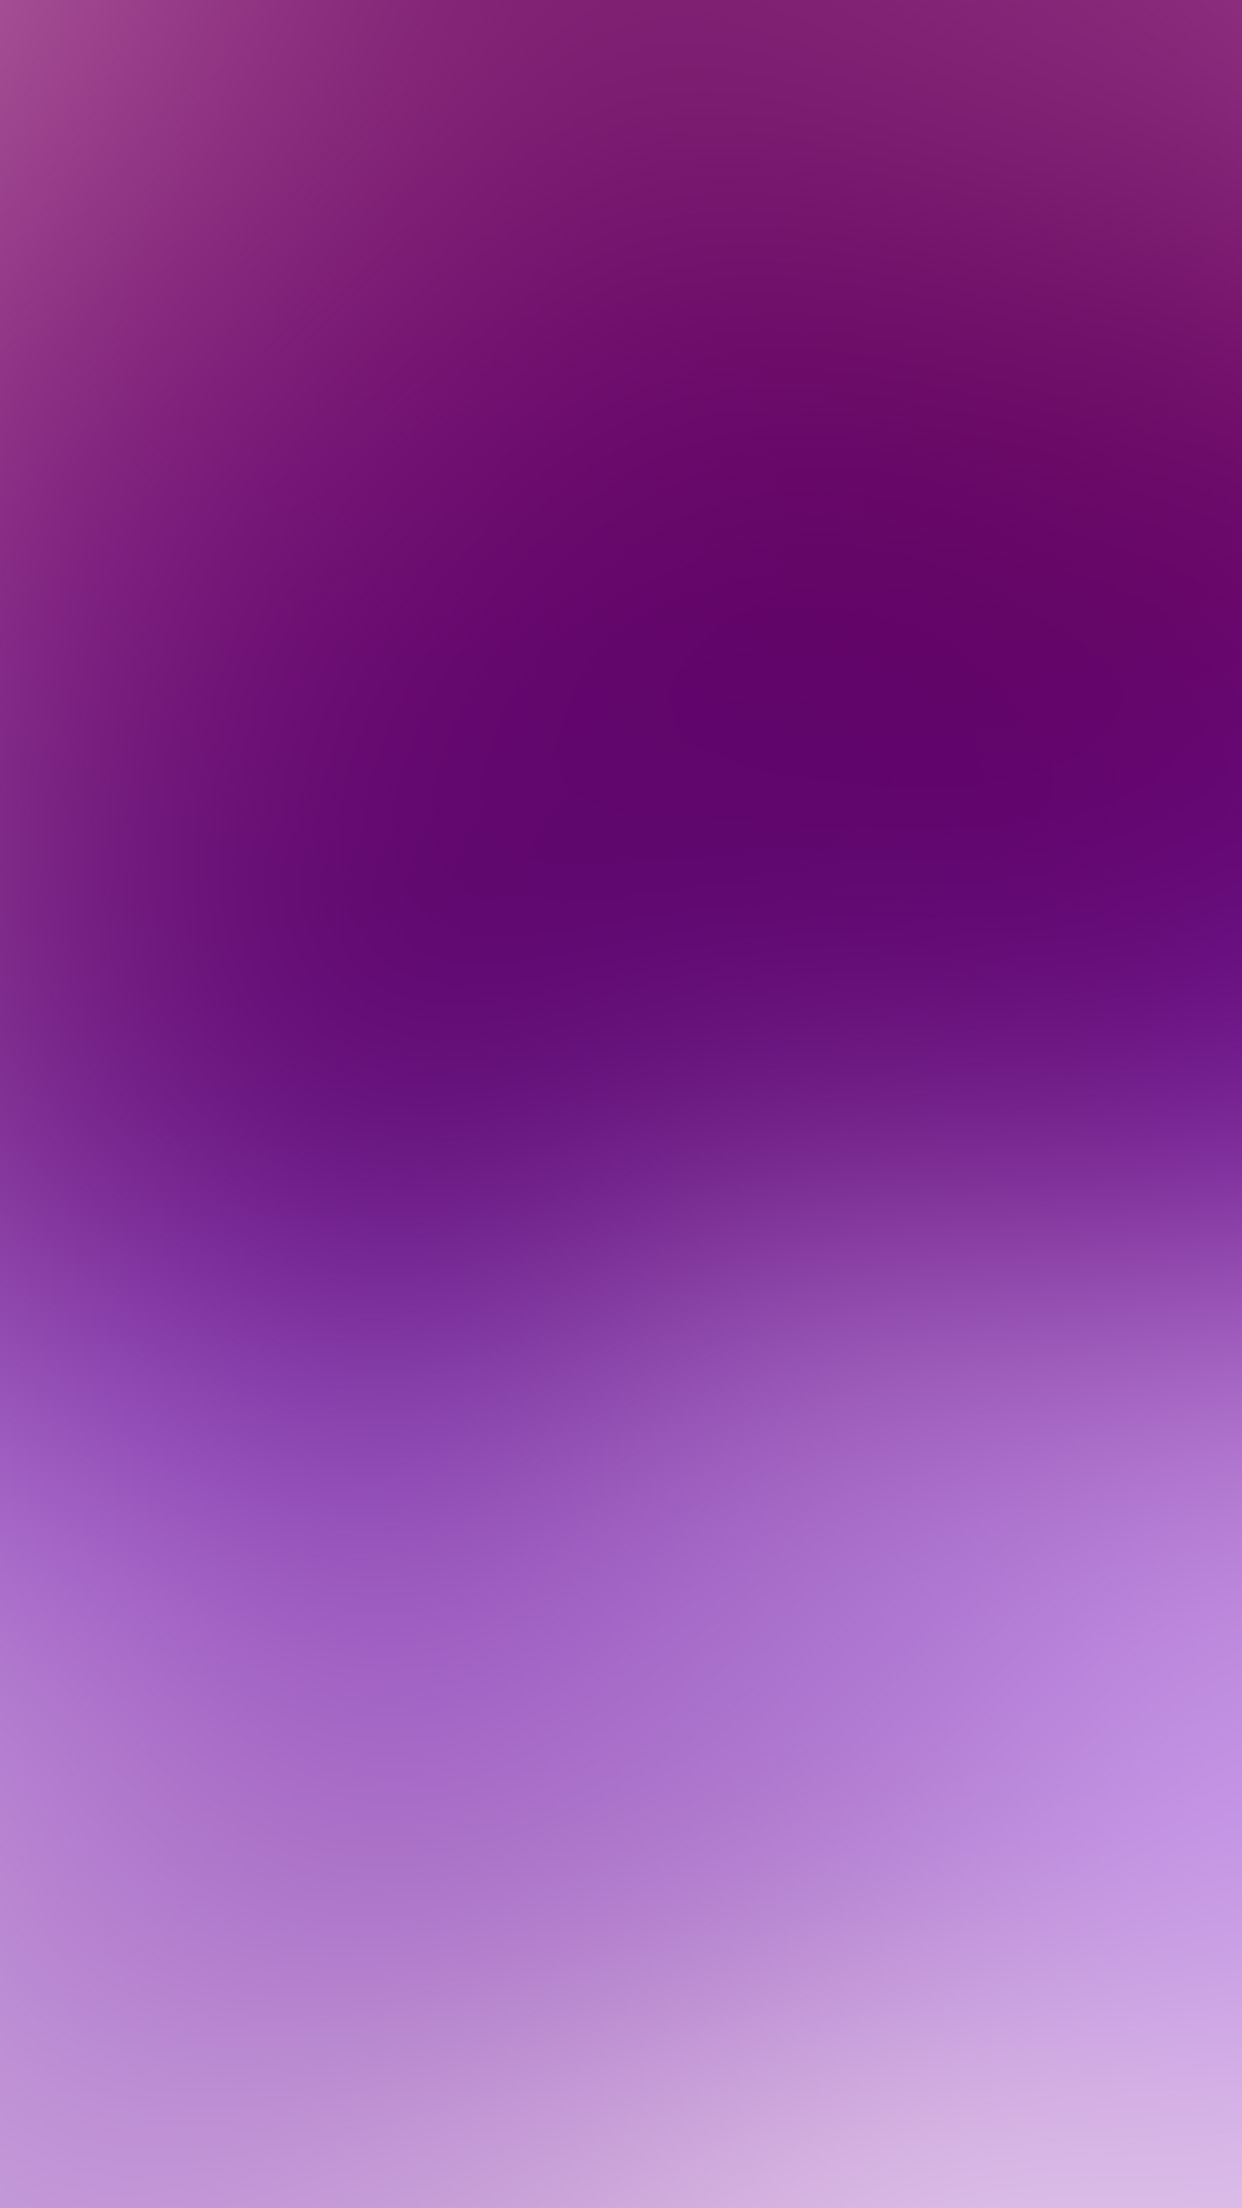 Cute Wallpapers For Iphone 6 Hd Sf29 Purple Rain Gradation Blur Papers Co